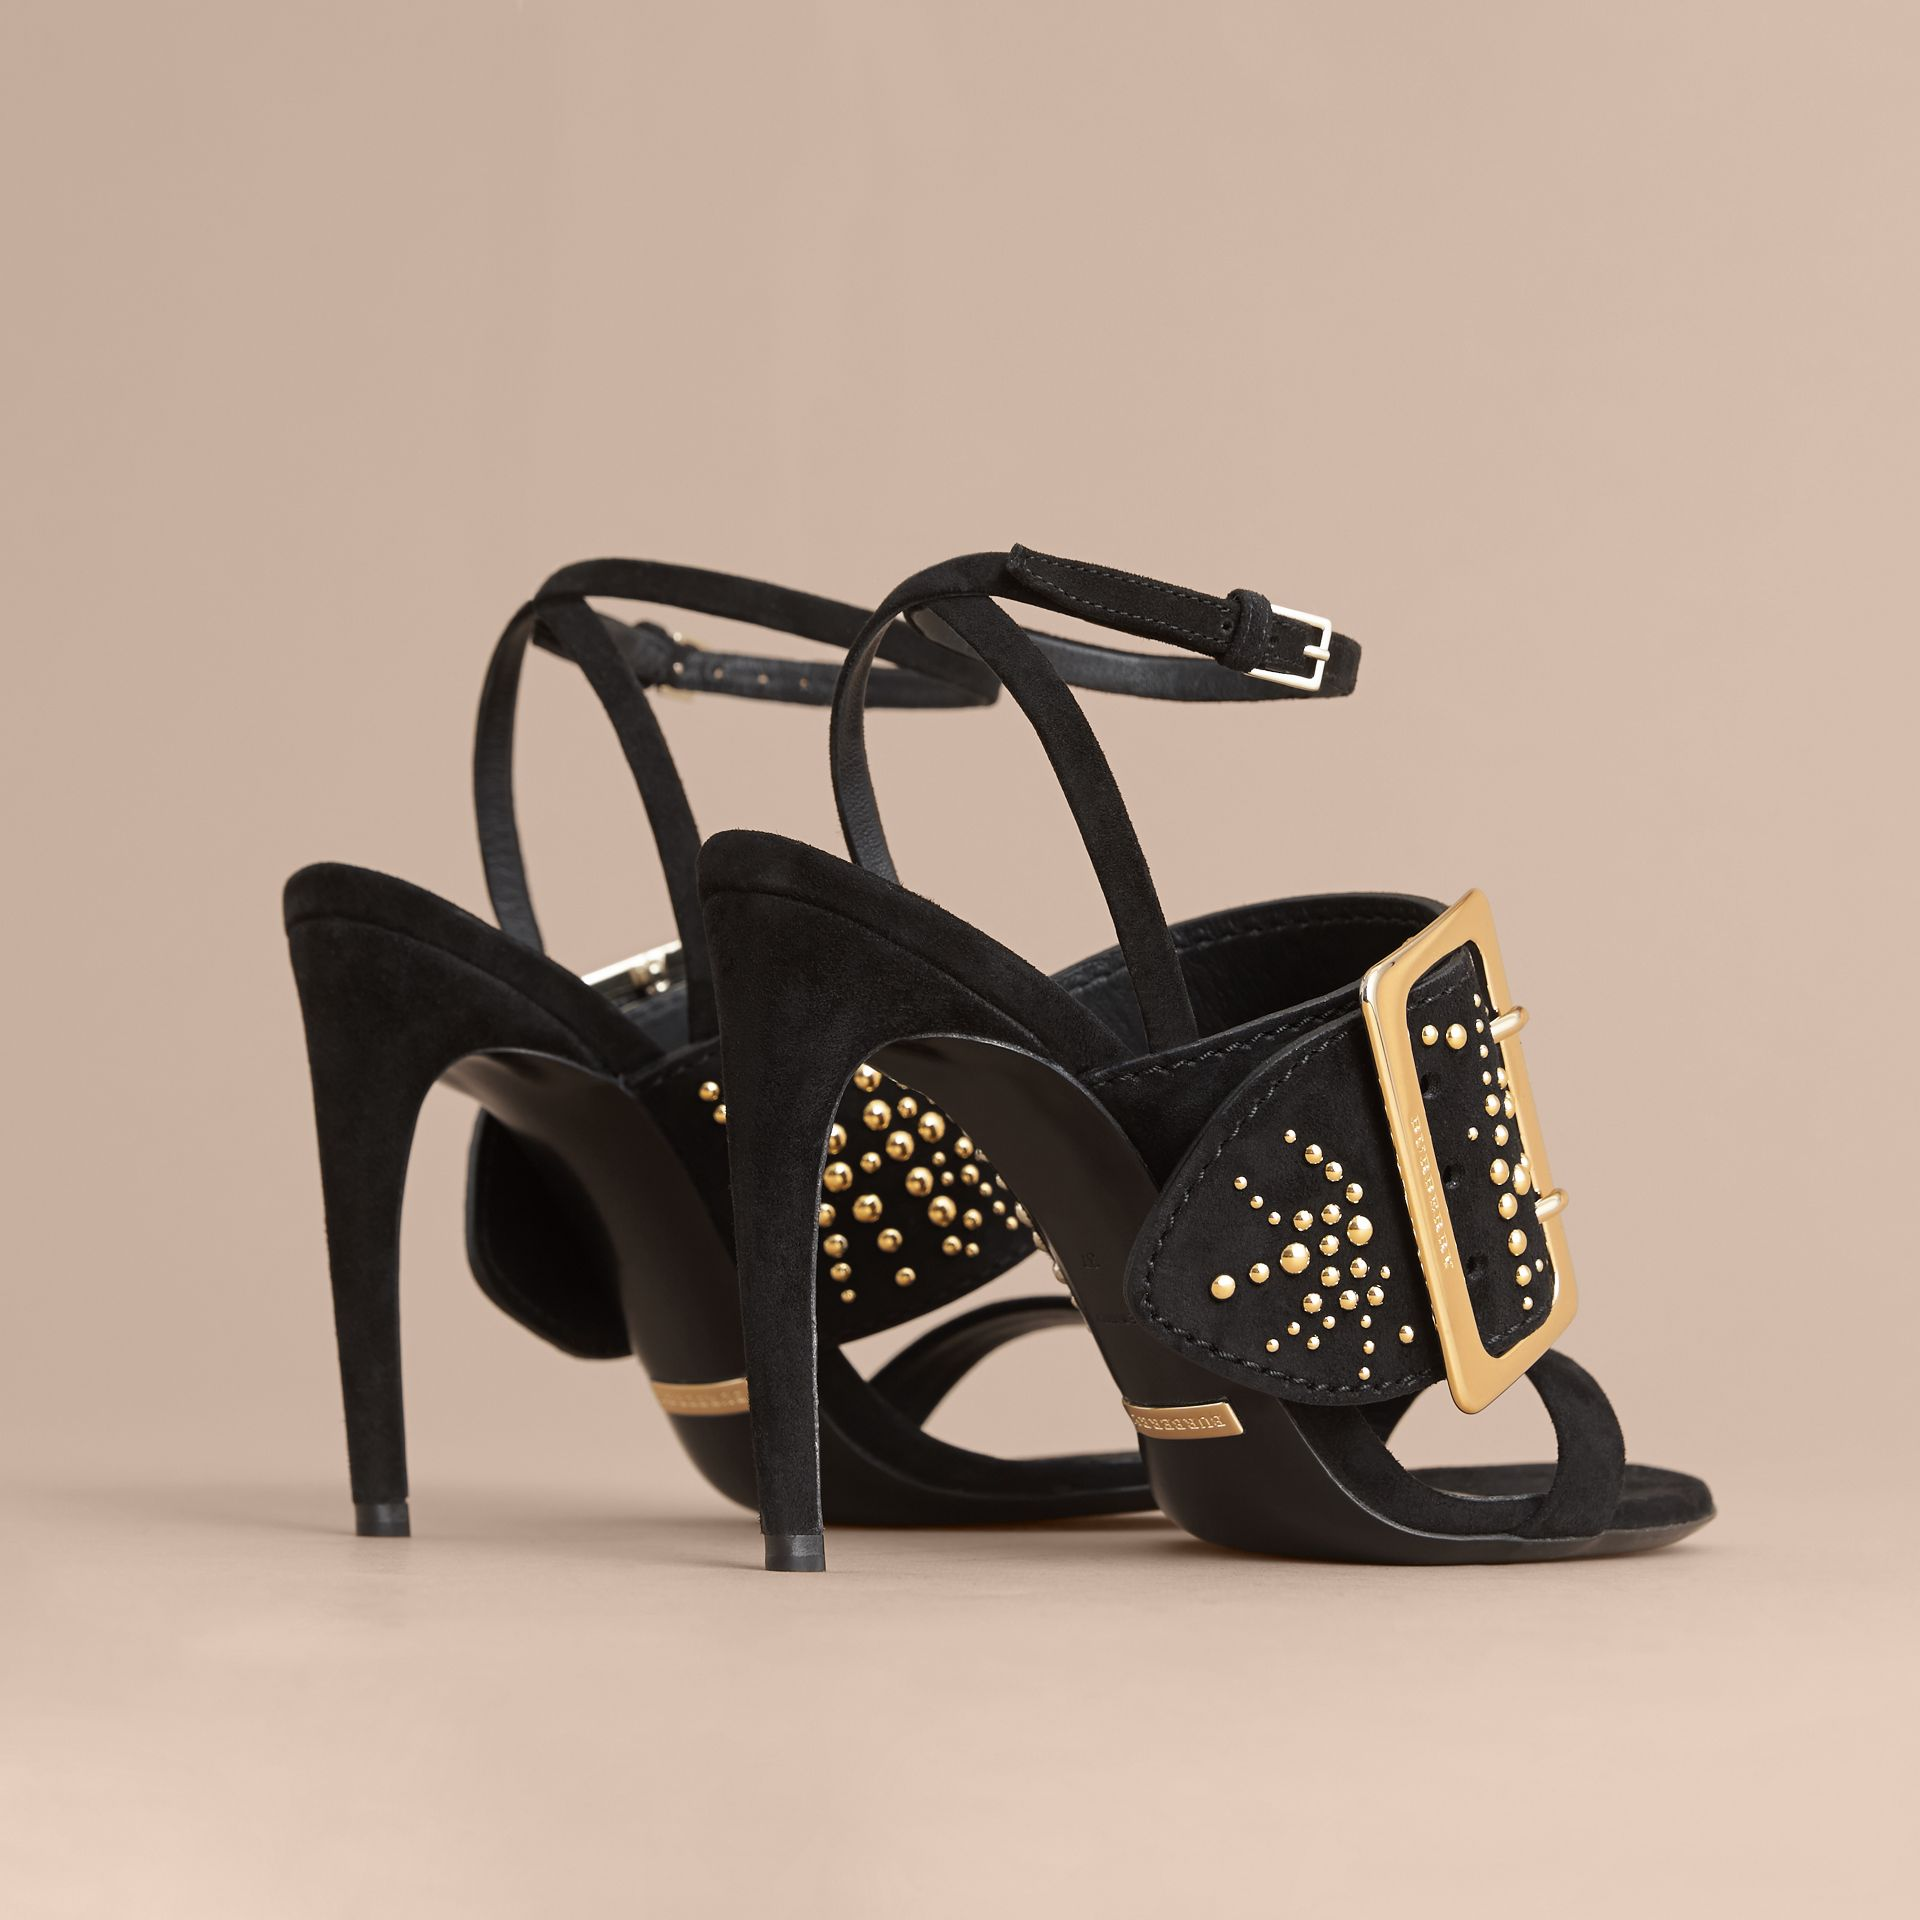 Riveted Suede Sandals with Buckle Detail in Black - Women | Burberry - gallery image 3